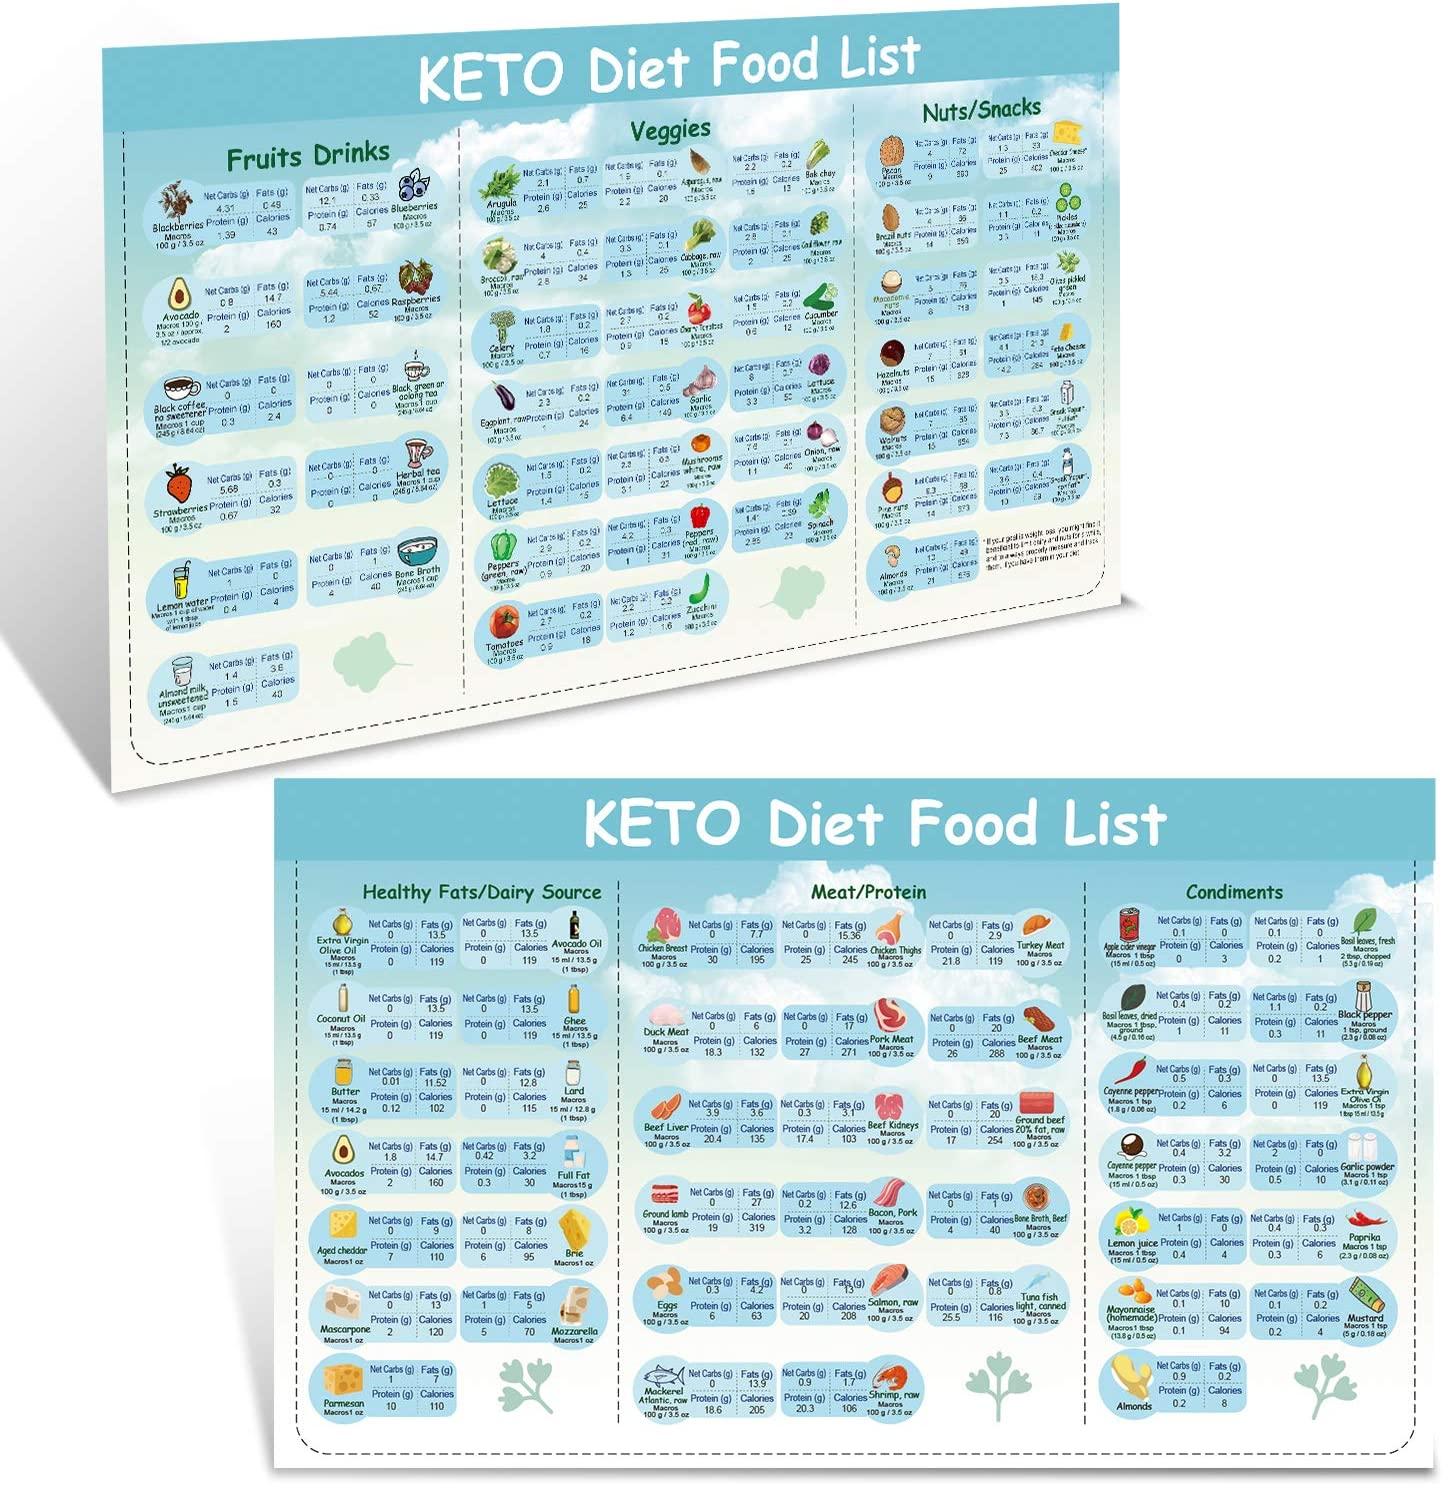 """Keto Diet Magnets Cheat Sheet Cookbook - 10.6""""x6.2"""" (large size) Fridge keto magnet cheat sheet Diet Guidelines for Includes Net Carbs,Fats,Protein and Calories of 87 Common Ingredients - Easy To Read"""